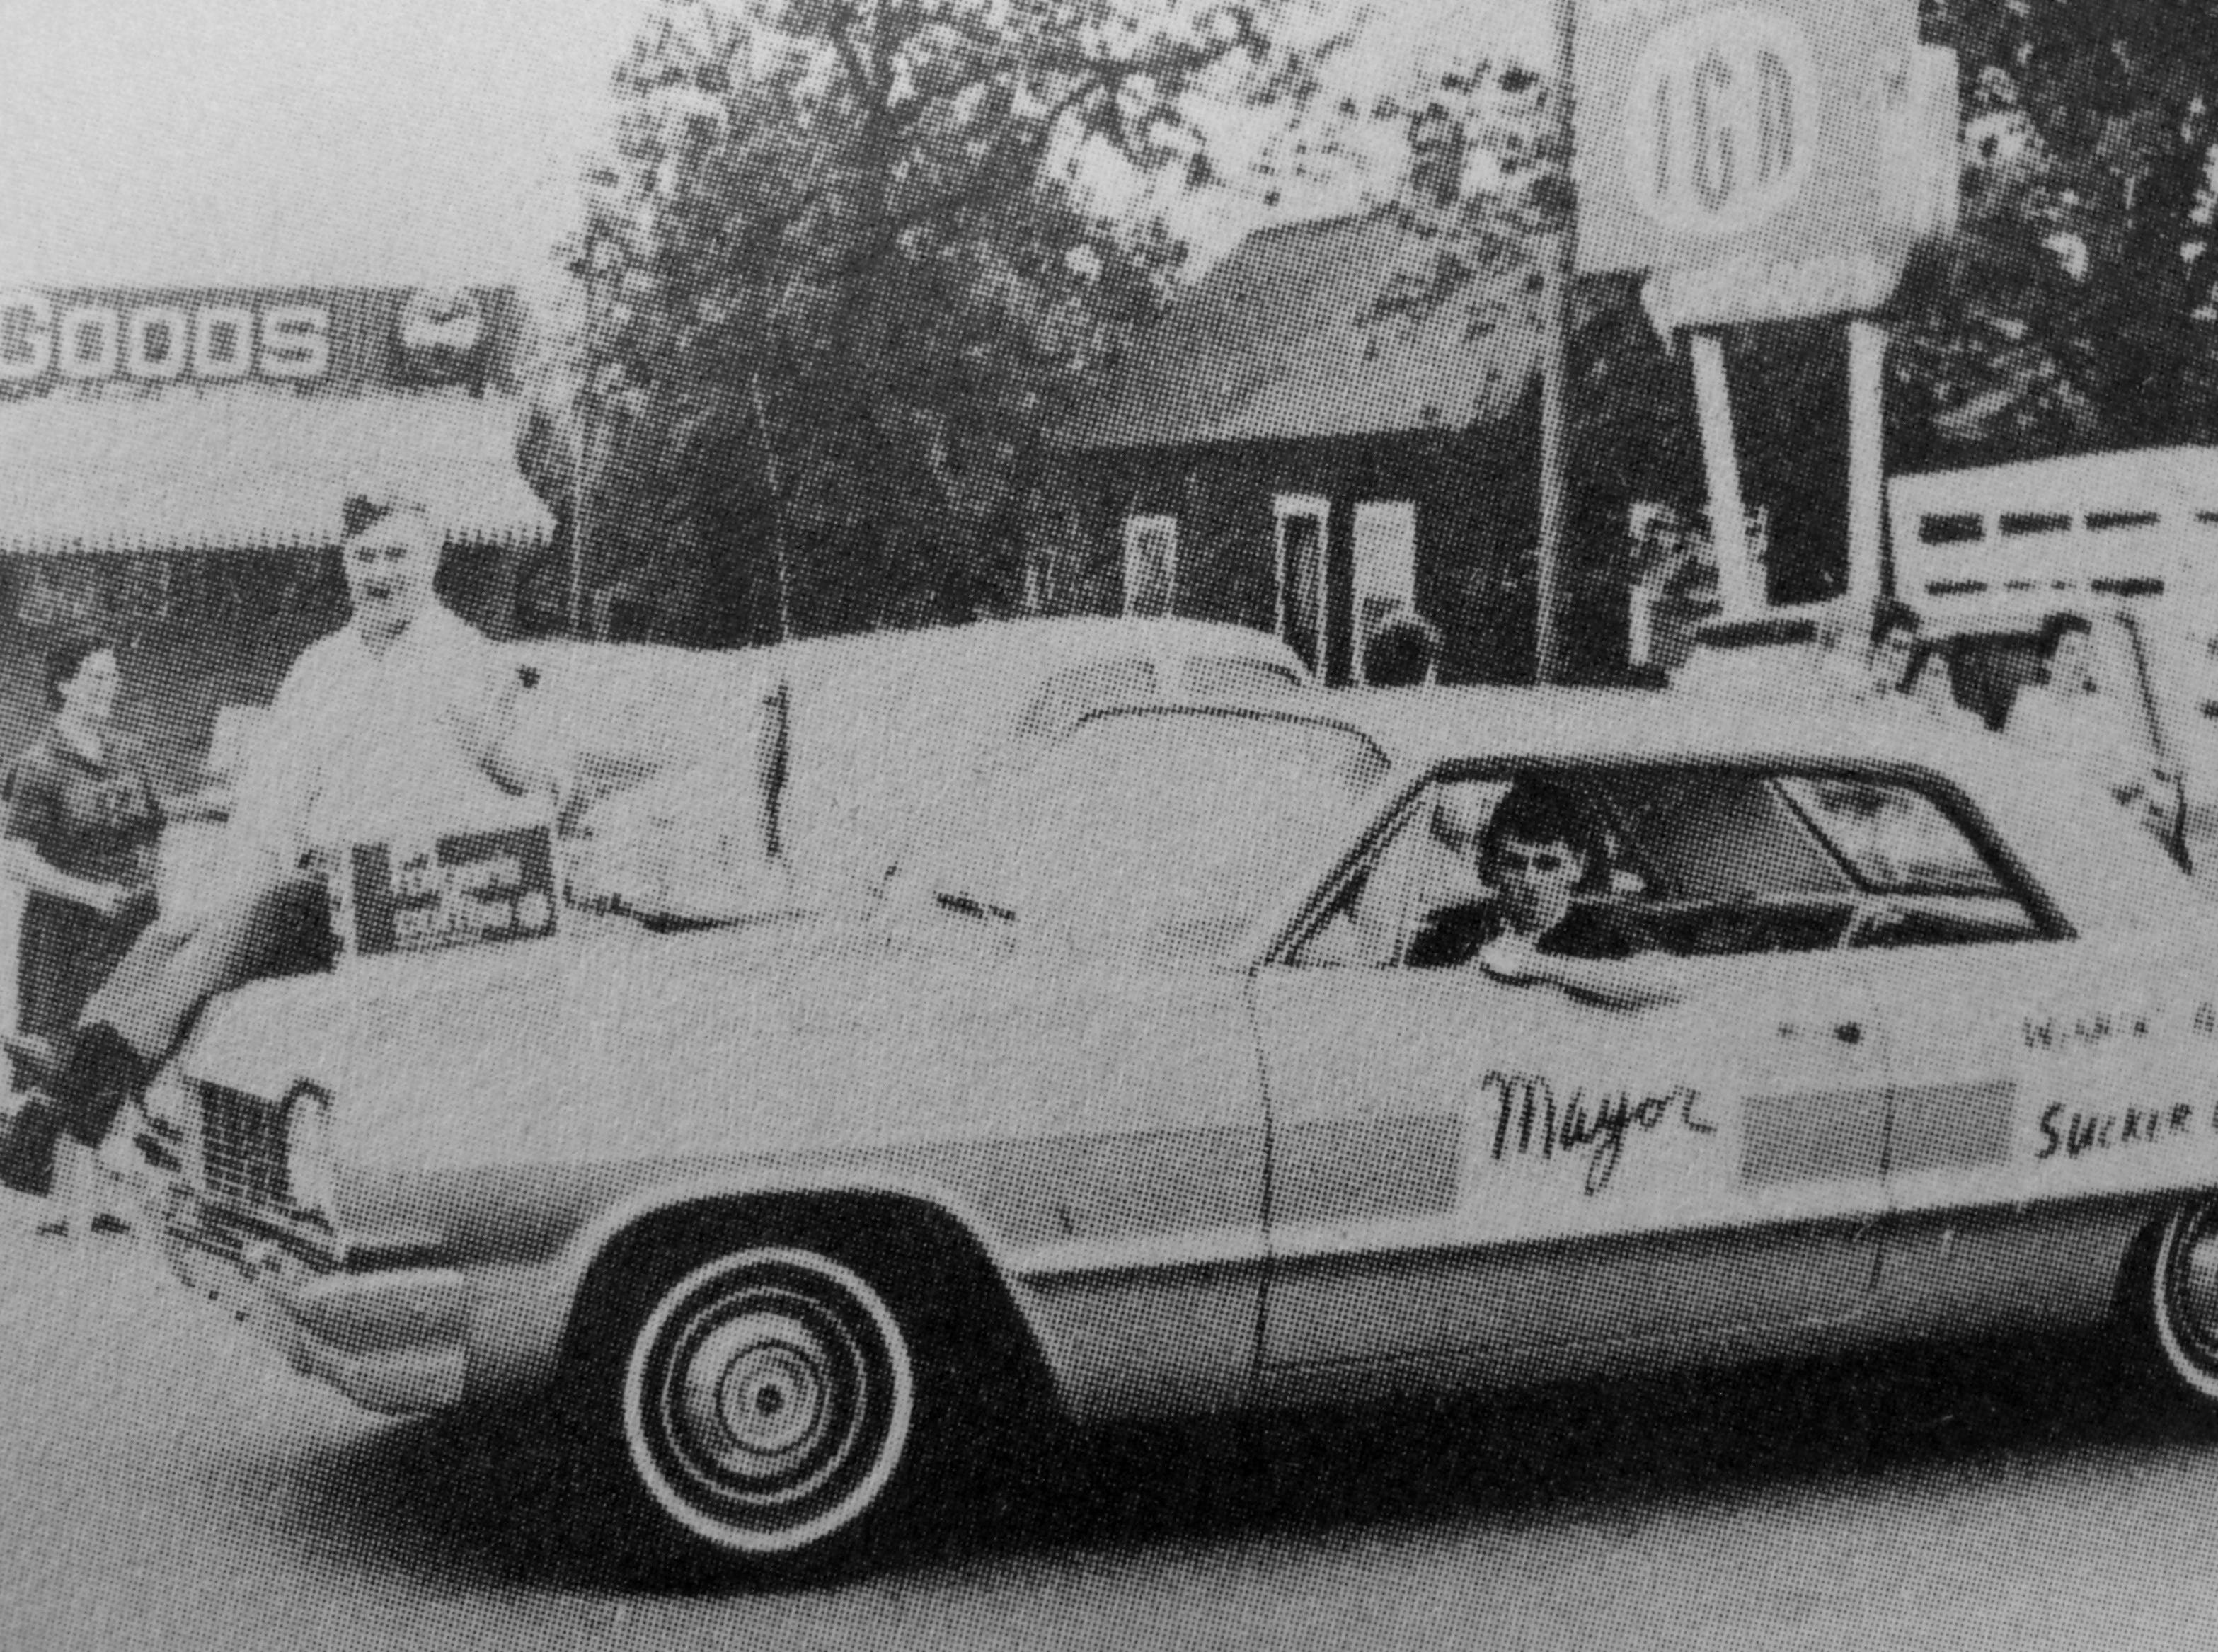 Mayor Gold in a Sucker Day parade. A vintage photo from the city of Nixa's collection.